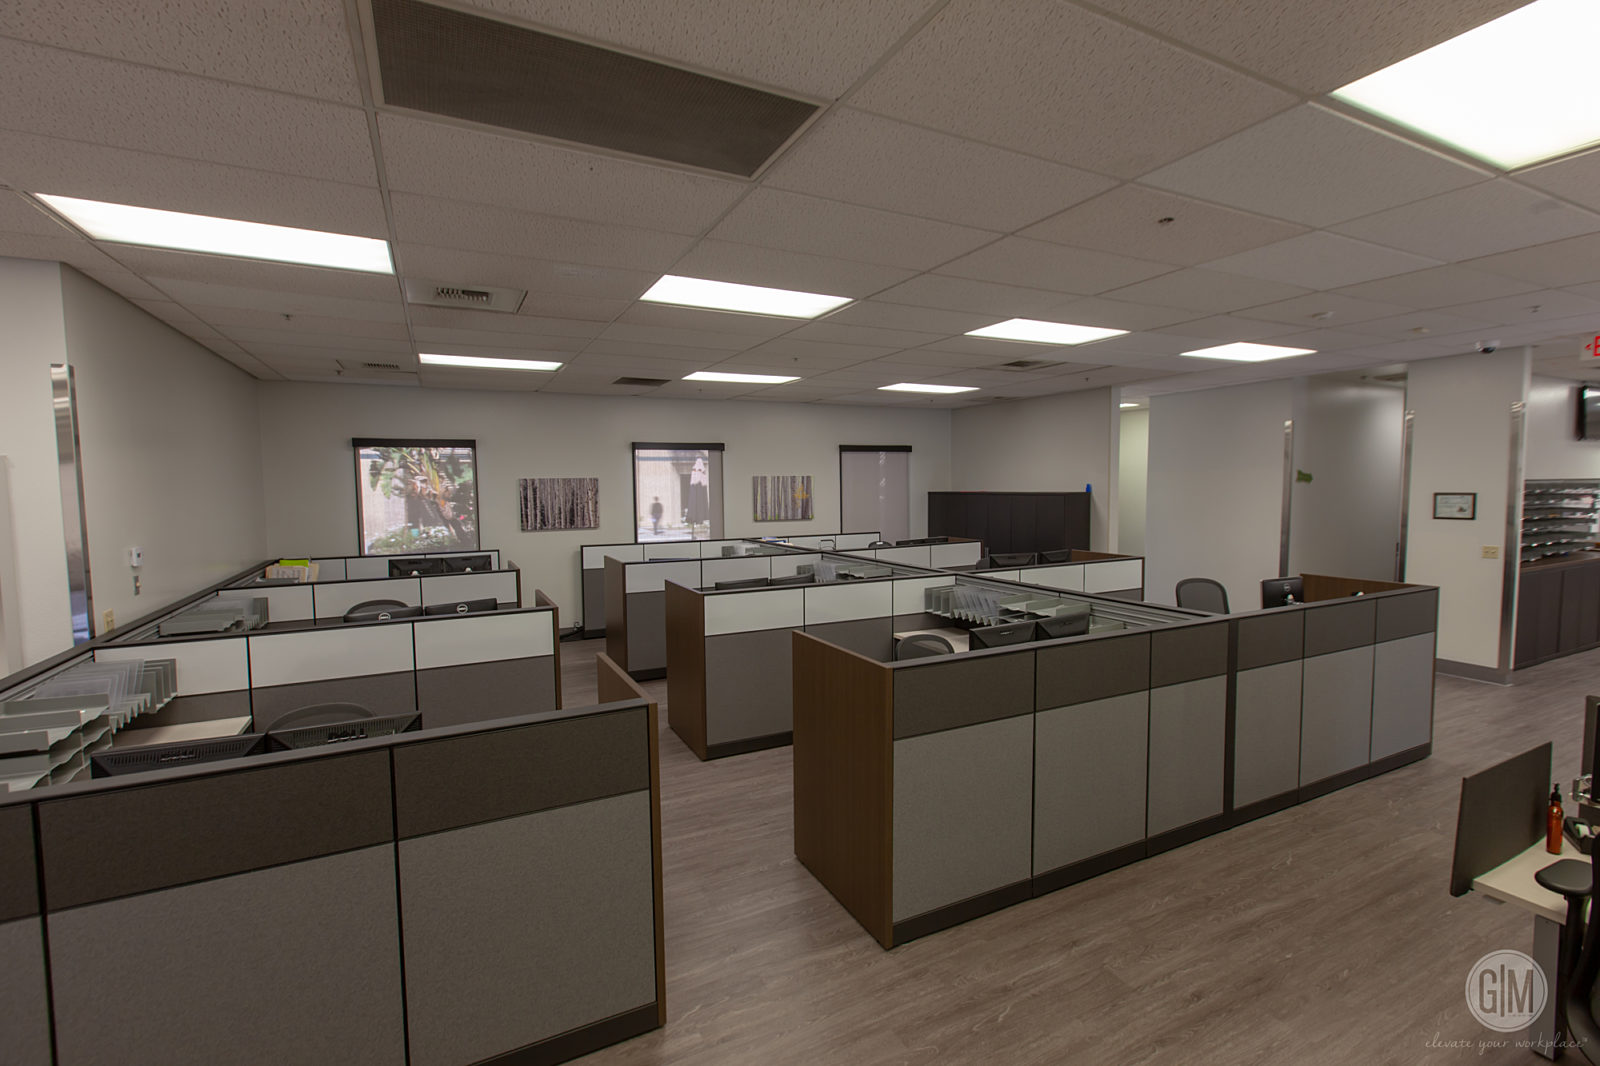 COSB Coroner's Office Department Area Makeover